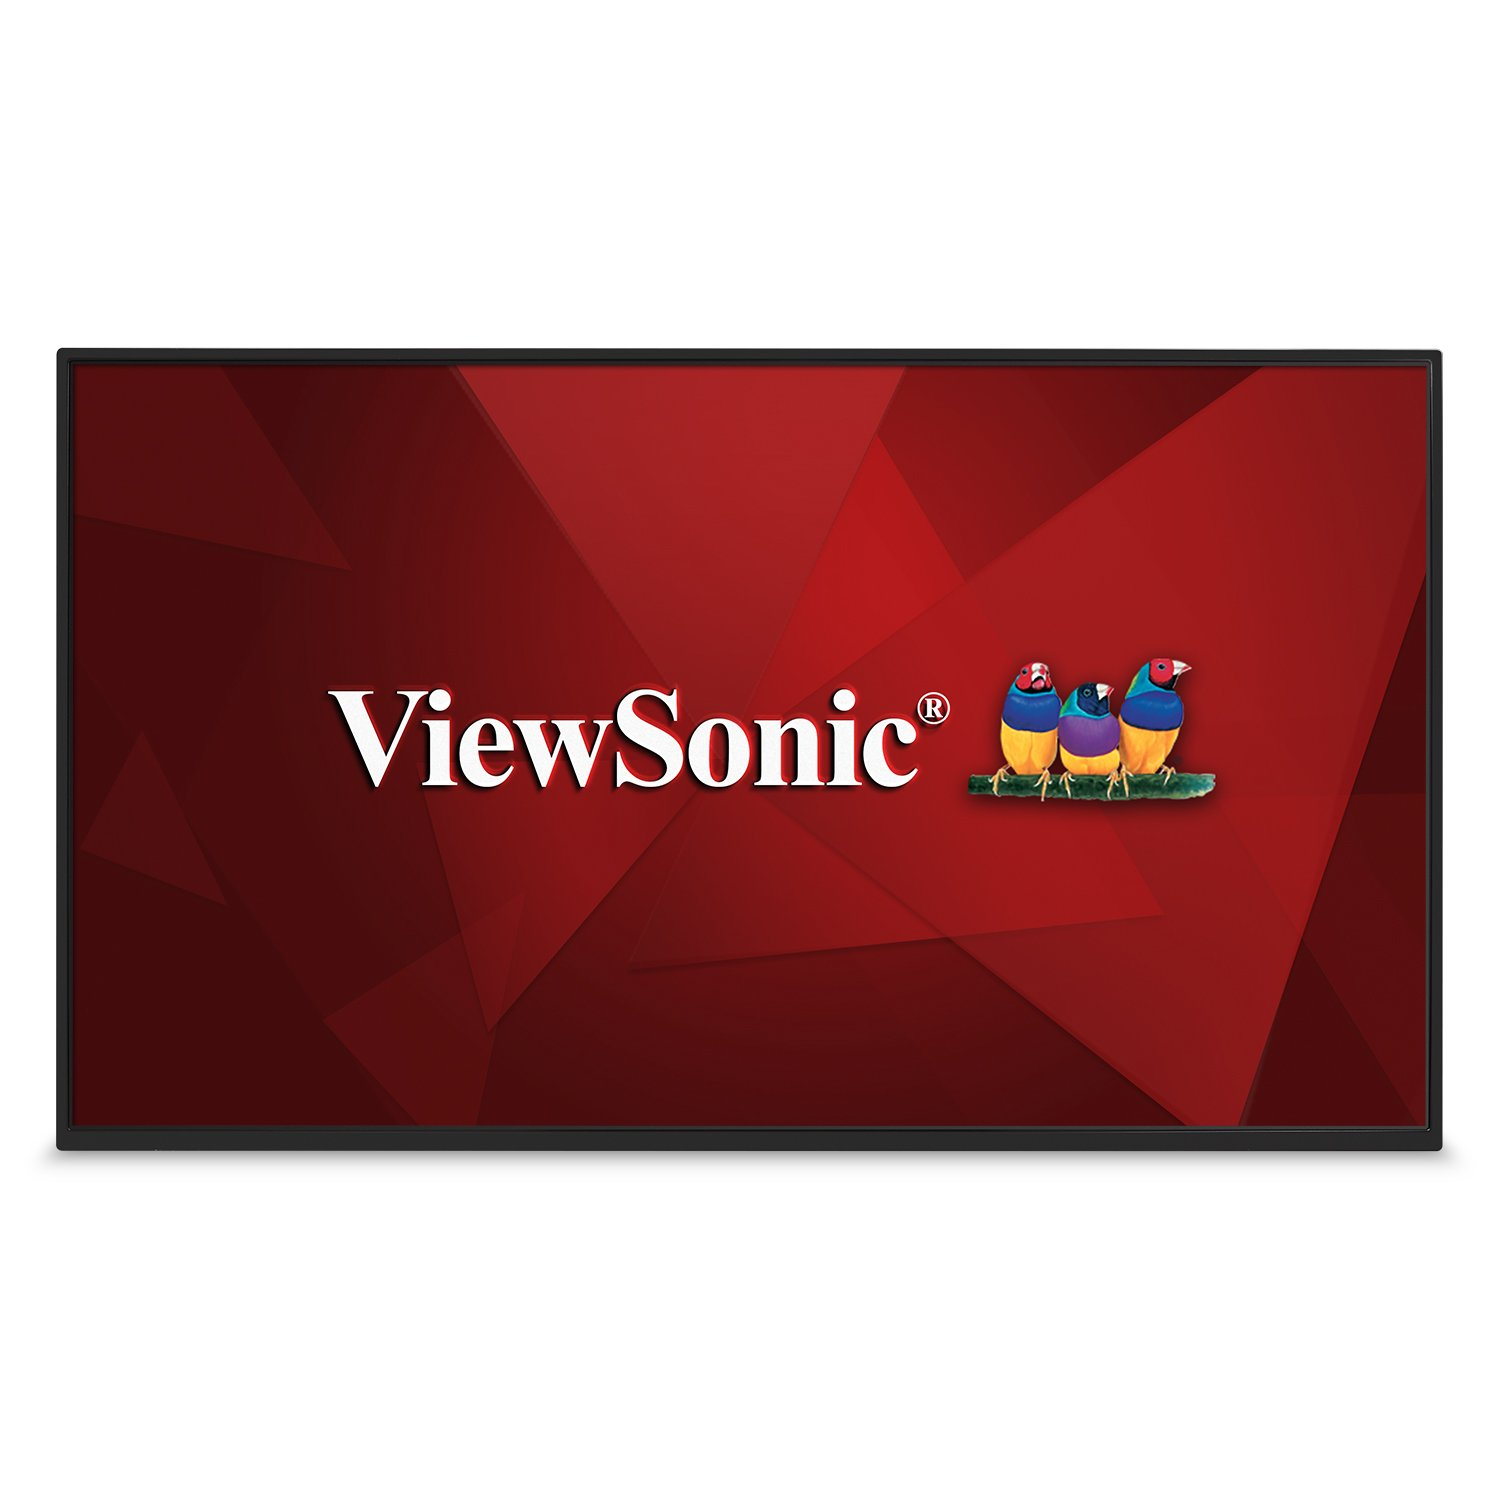 ViewSonic CDM4300R 43'' 1080p LED Commercial Display with USB Media Player, HDMI